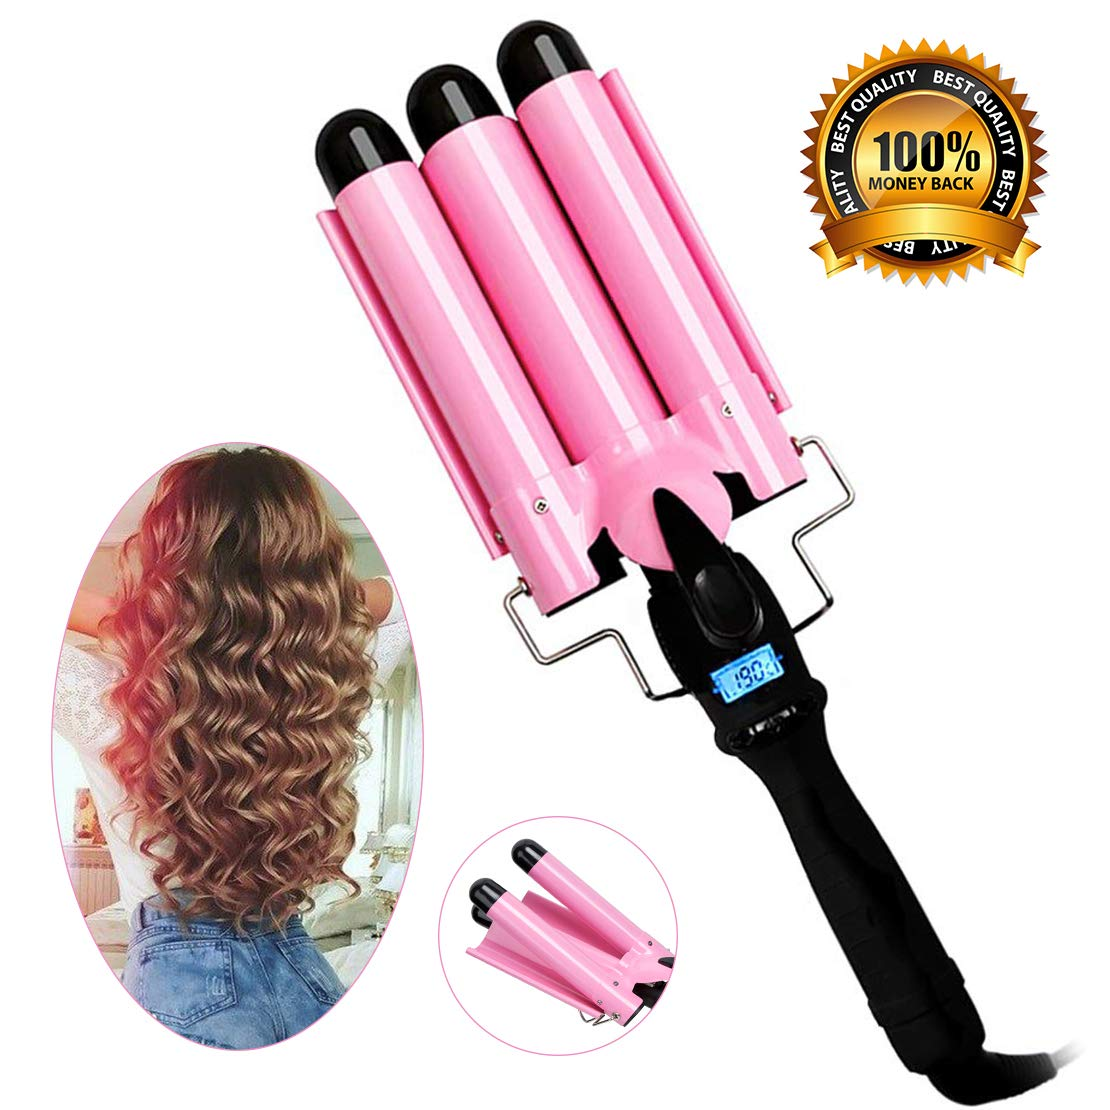 3 Barrel Curling Iron with LCD Temperature Display – 1 Inch Ceramic Tourmaline Triple Barrels, Ceramic Hair Crimper Hair Waver Hair Curlers Hair Curling Wand for Deep Waves Suit for All Hair Style